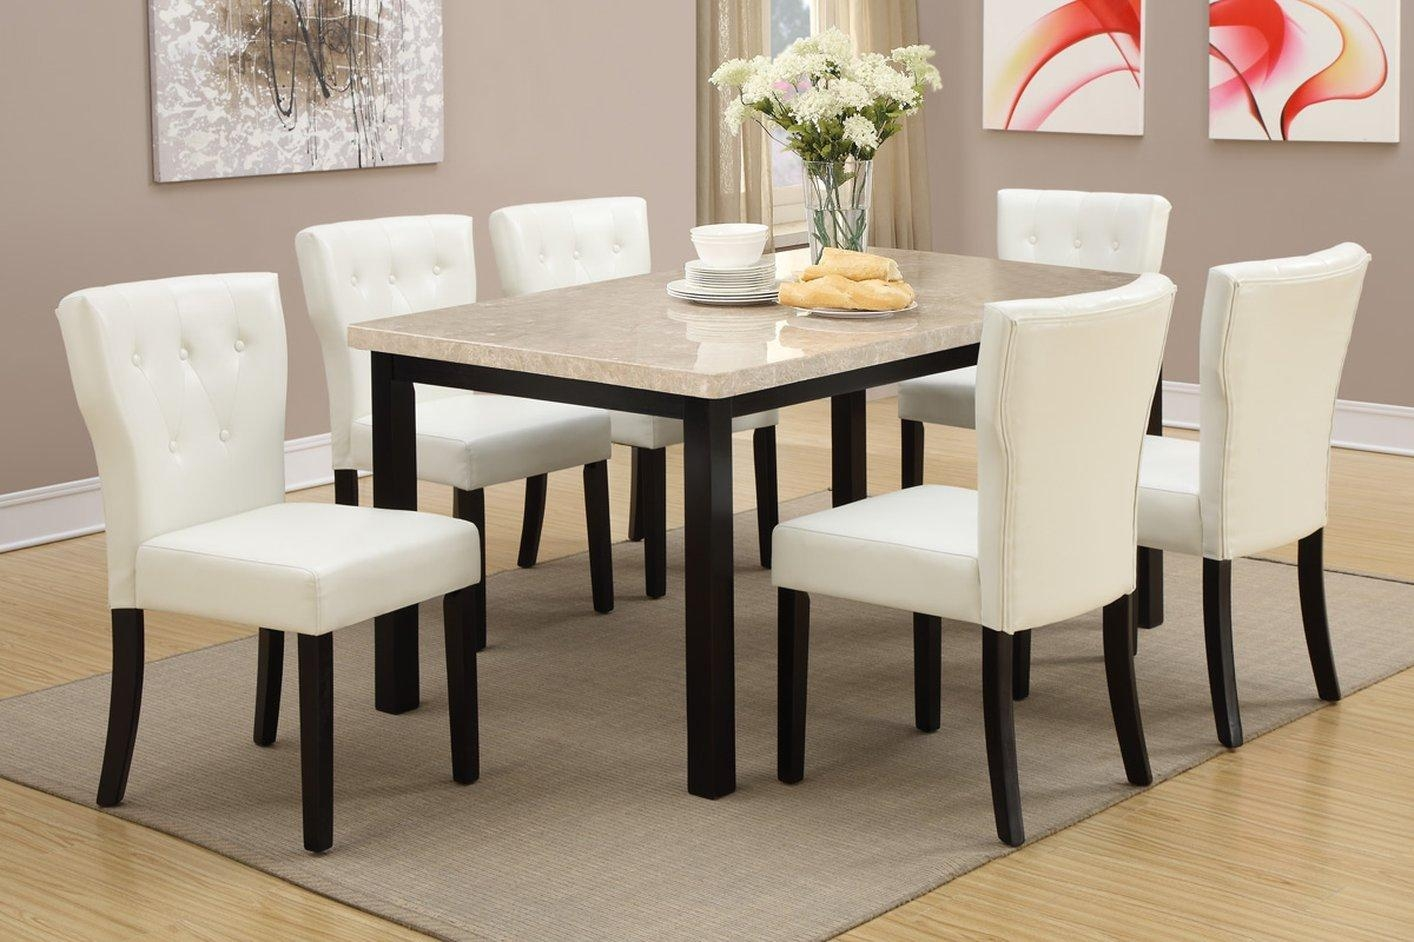 Brown Marble Dining Table – Steal A Sofa Furniture Outlet Los In Dining Table With Sofa Chairs (View 11 of 20)